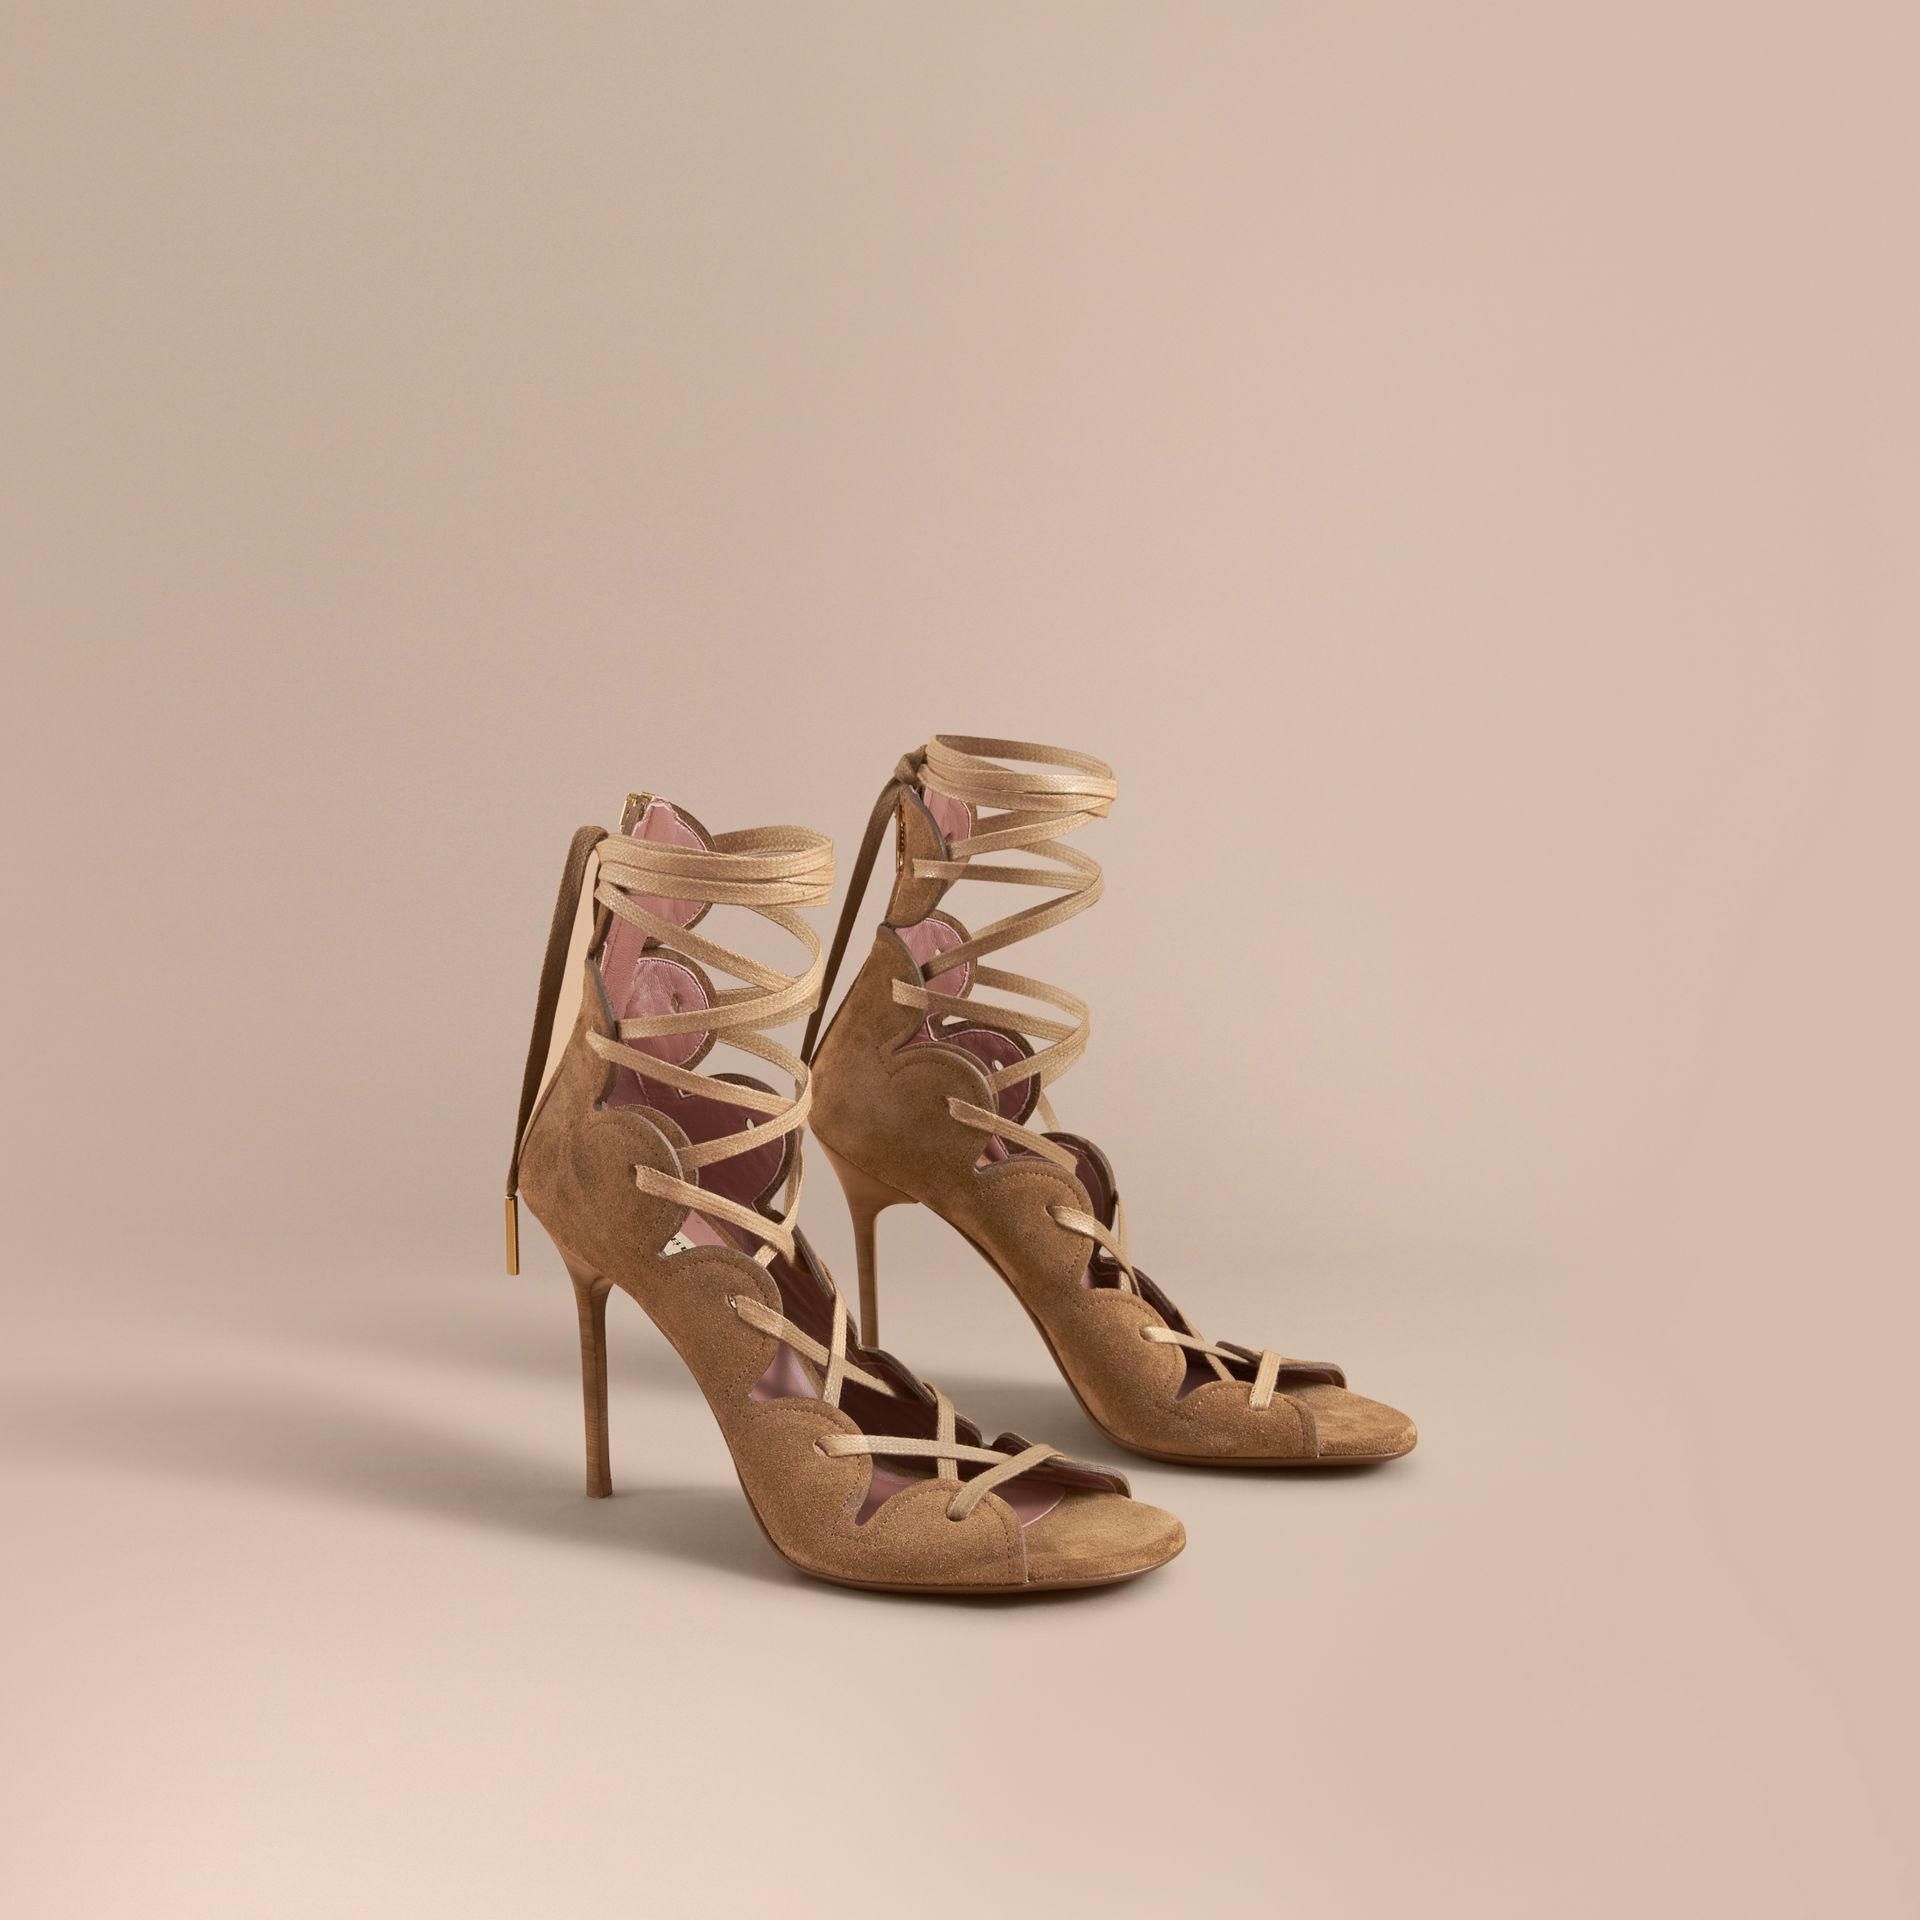 Scalloped Suede Lace-up Sandals in Sandstone - Women | Burberry - gallery image 1